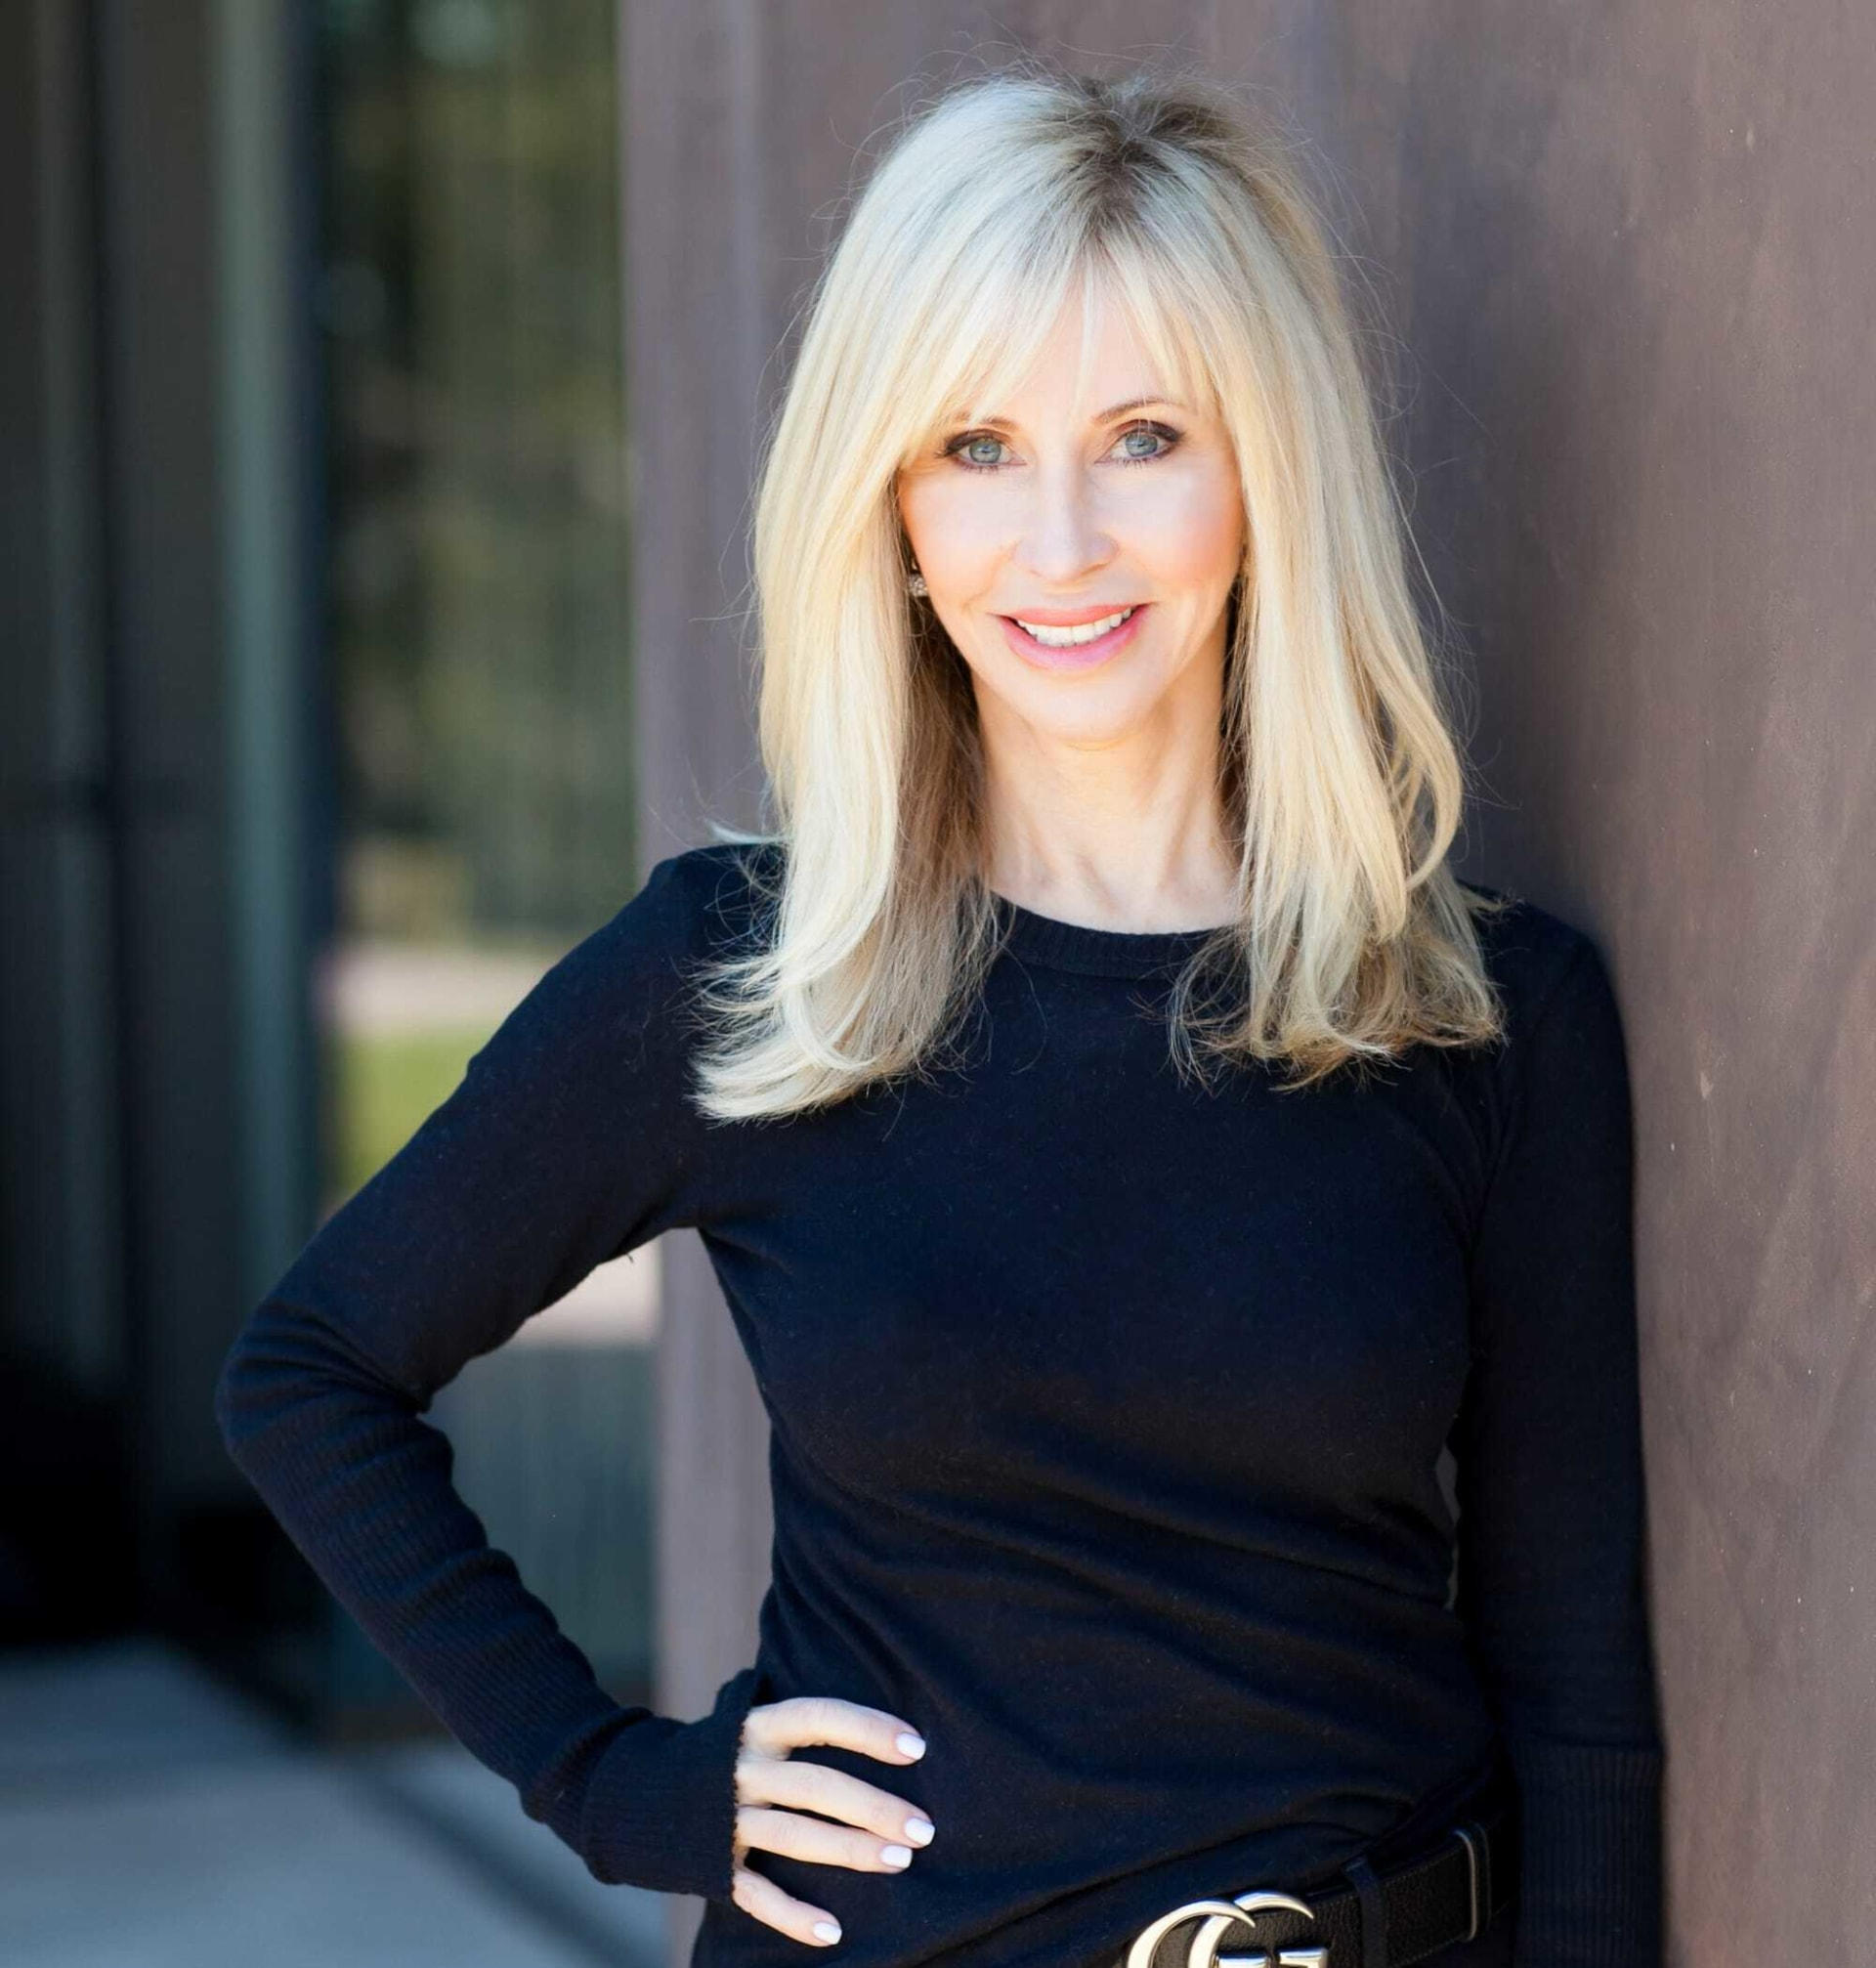 GINGER MARTIN: NAPA VALLEY'S LEADING REAL ESTATE AGENT